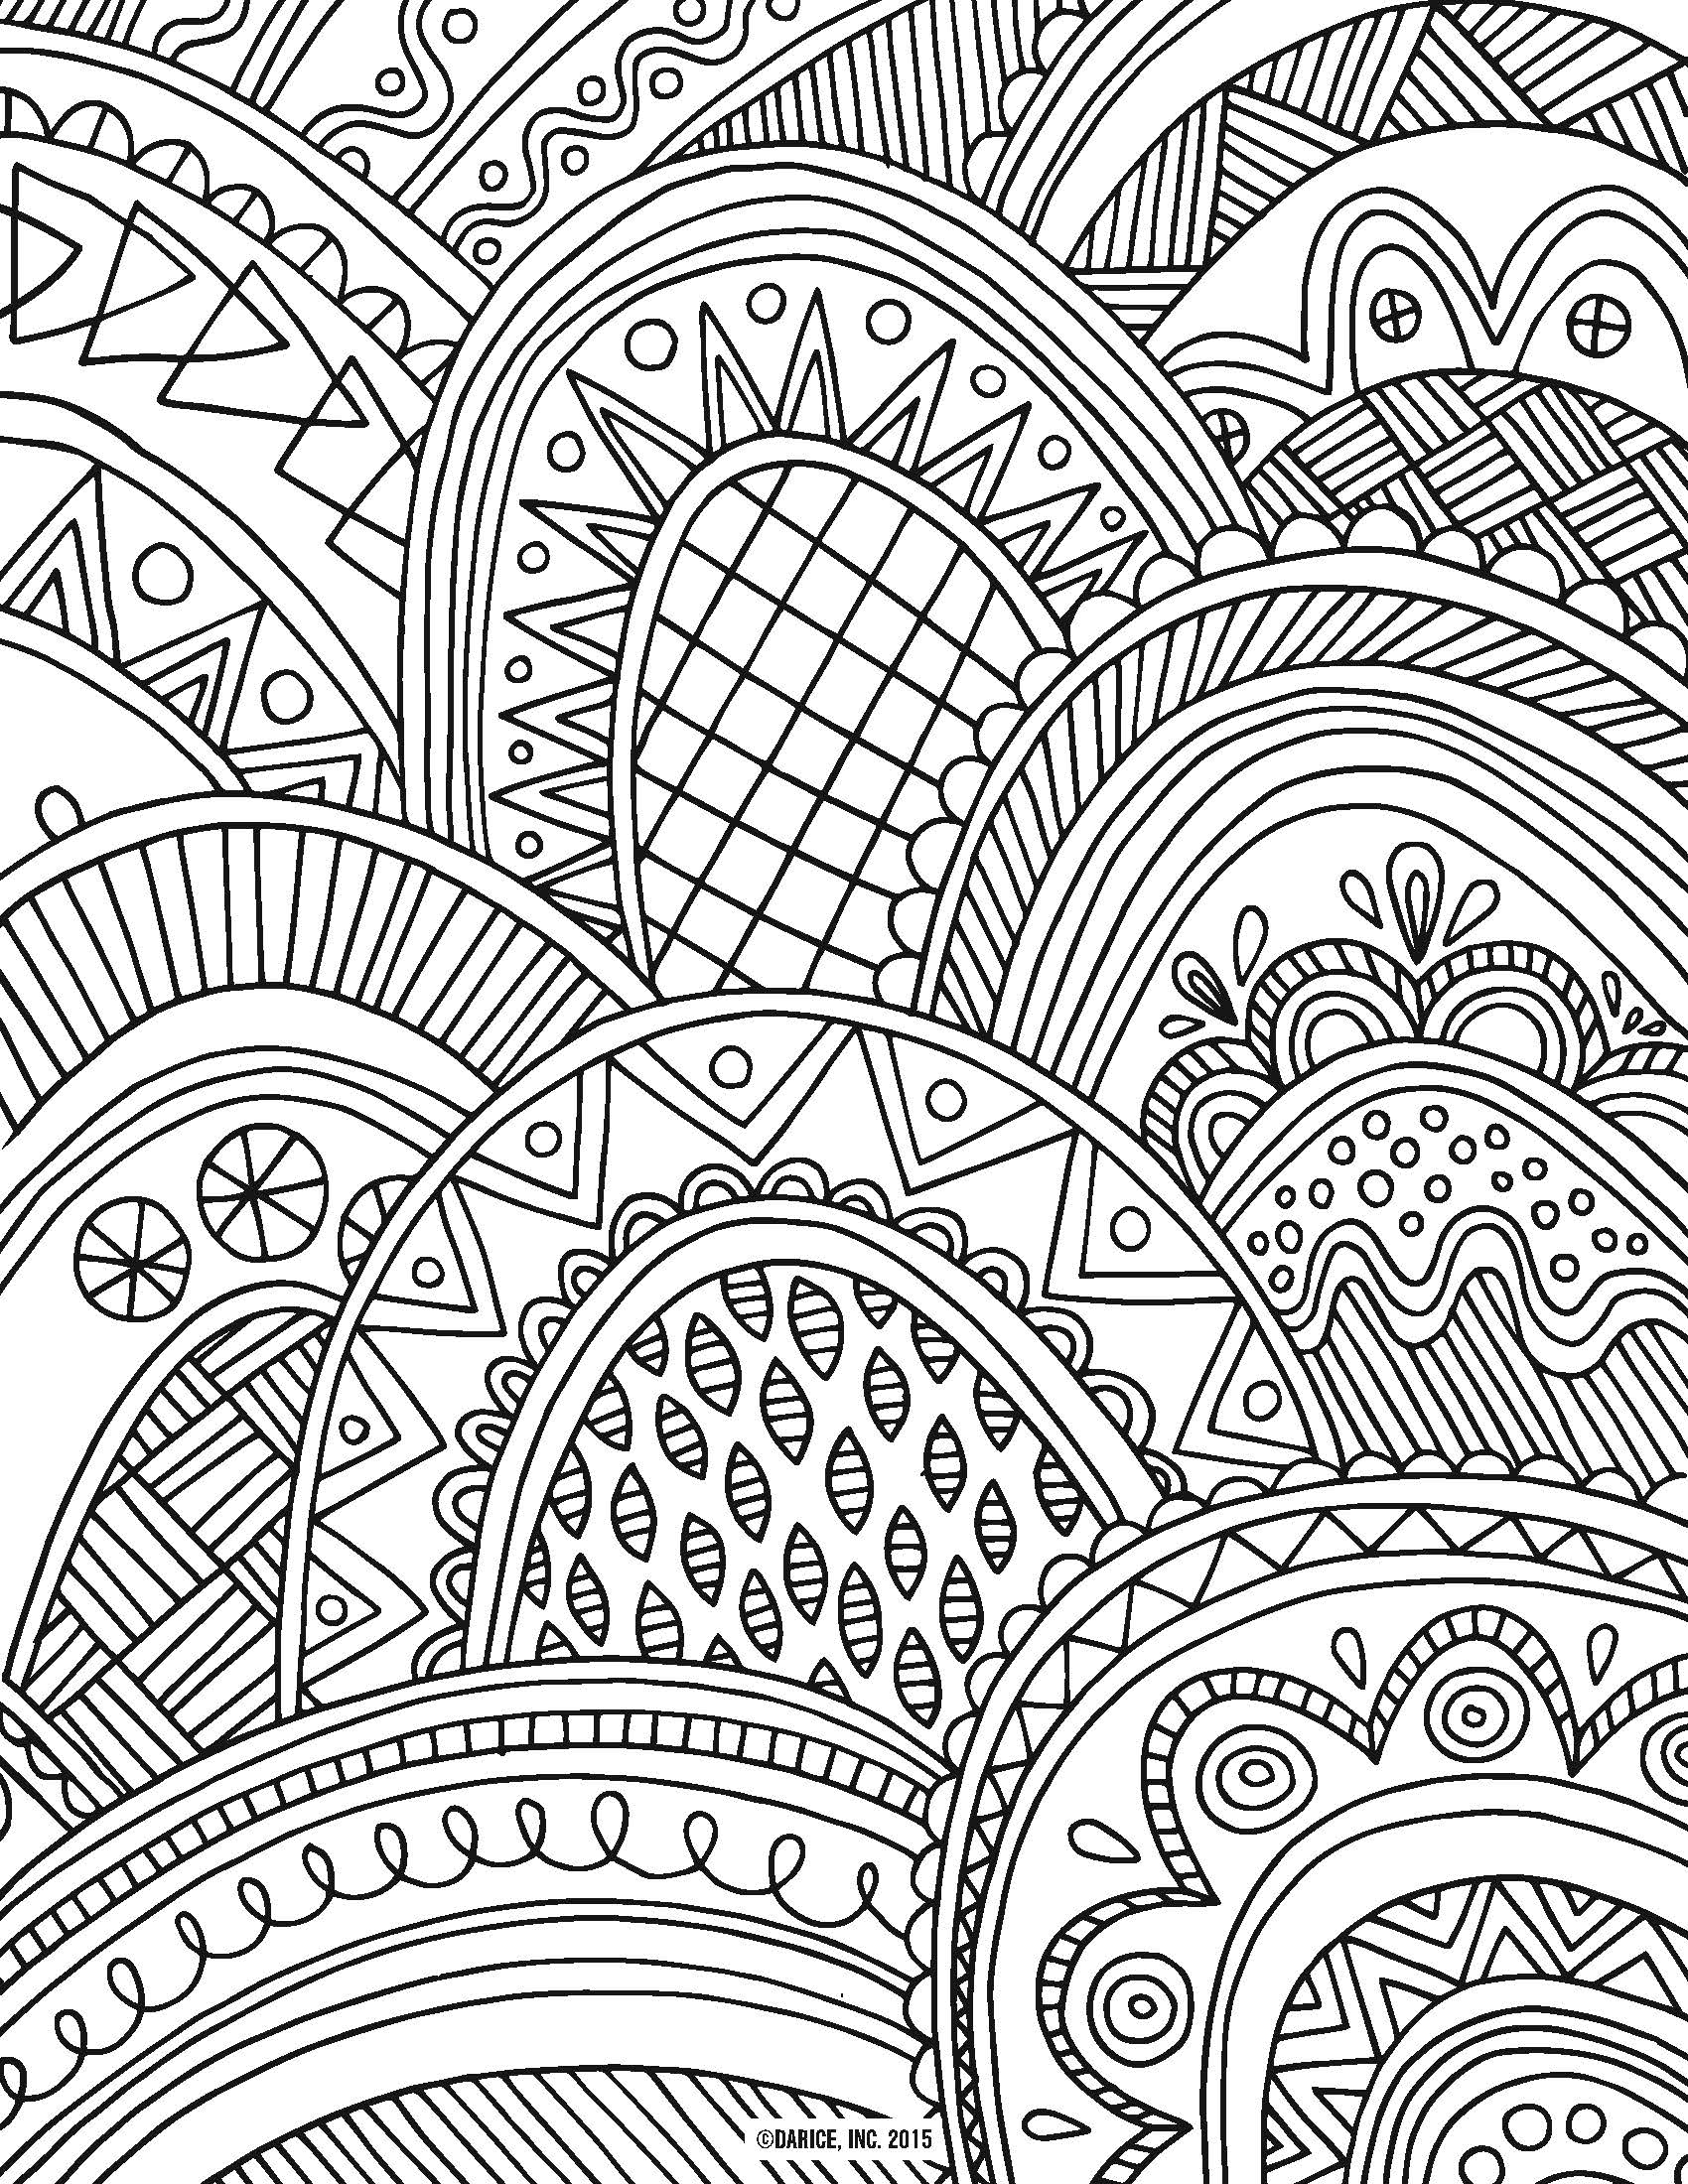 coloring prints for adults owl coloring pages for adults free detailed owl coloring adults coloring for prints